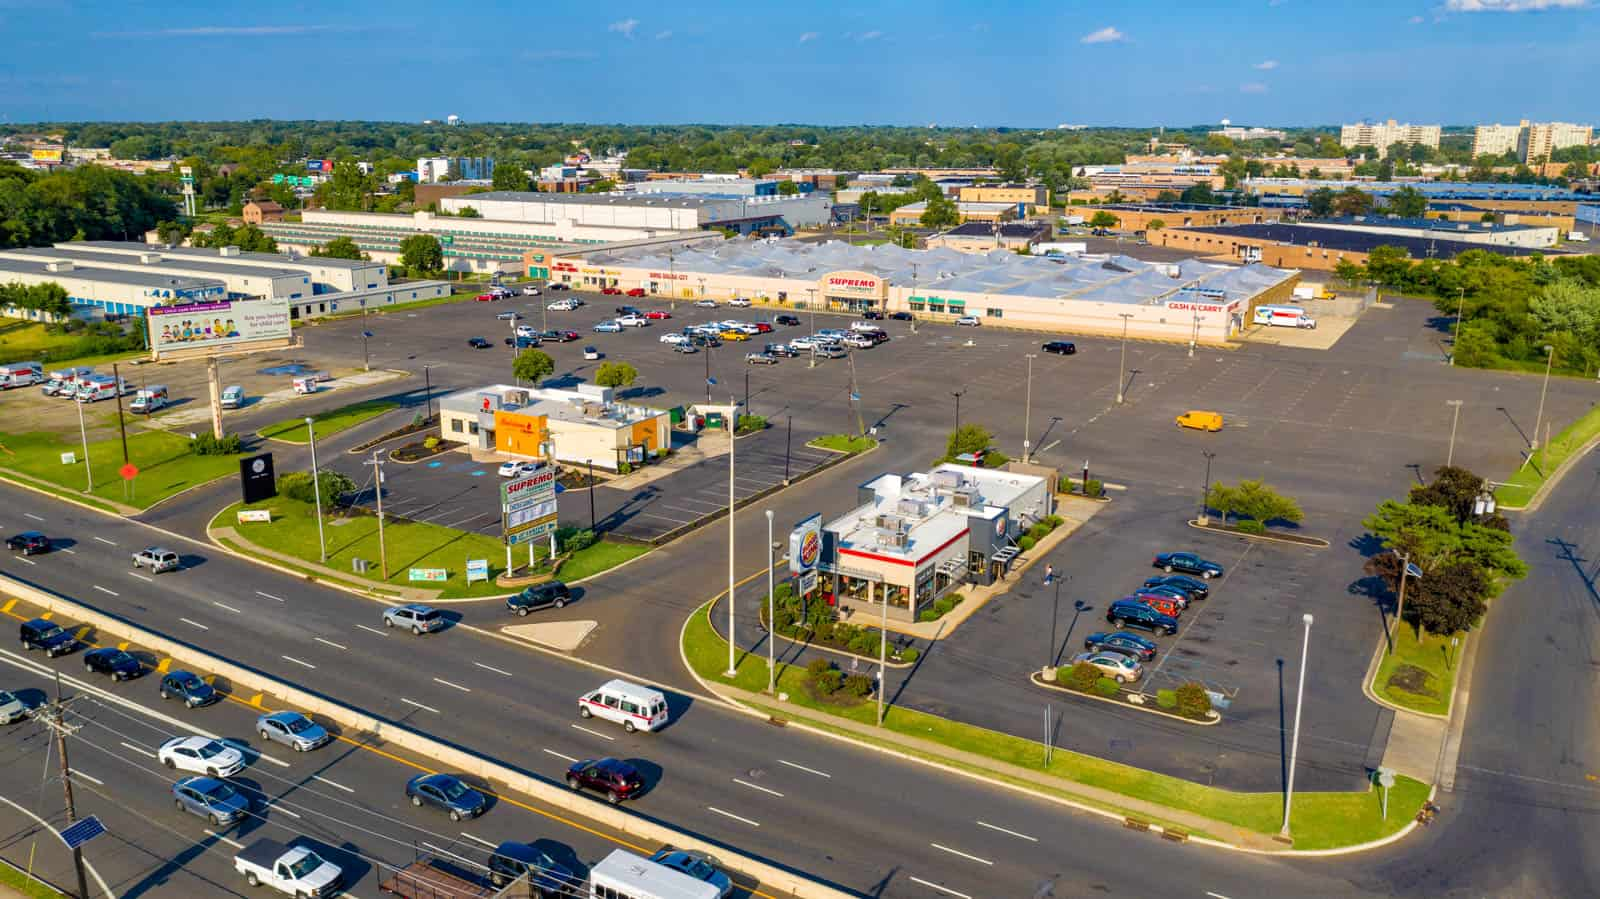 drone photo of commercial real estate property in Pennsauken Township, NJ